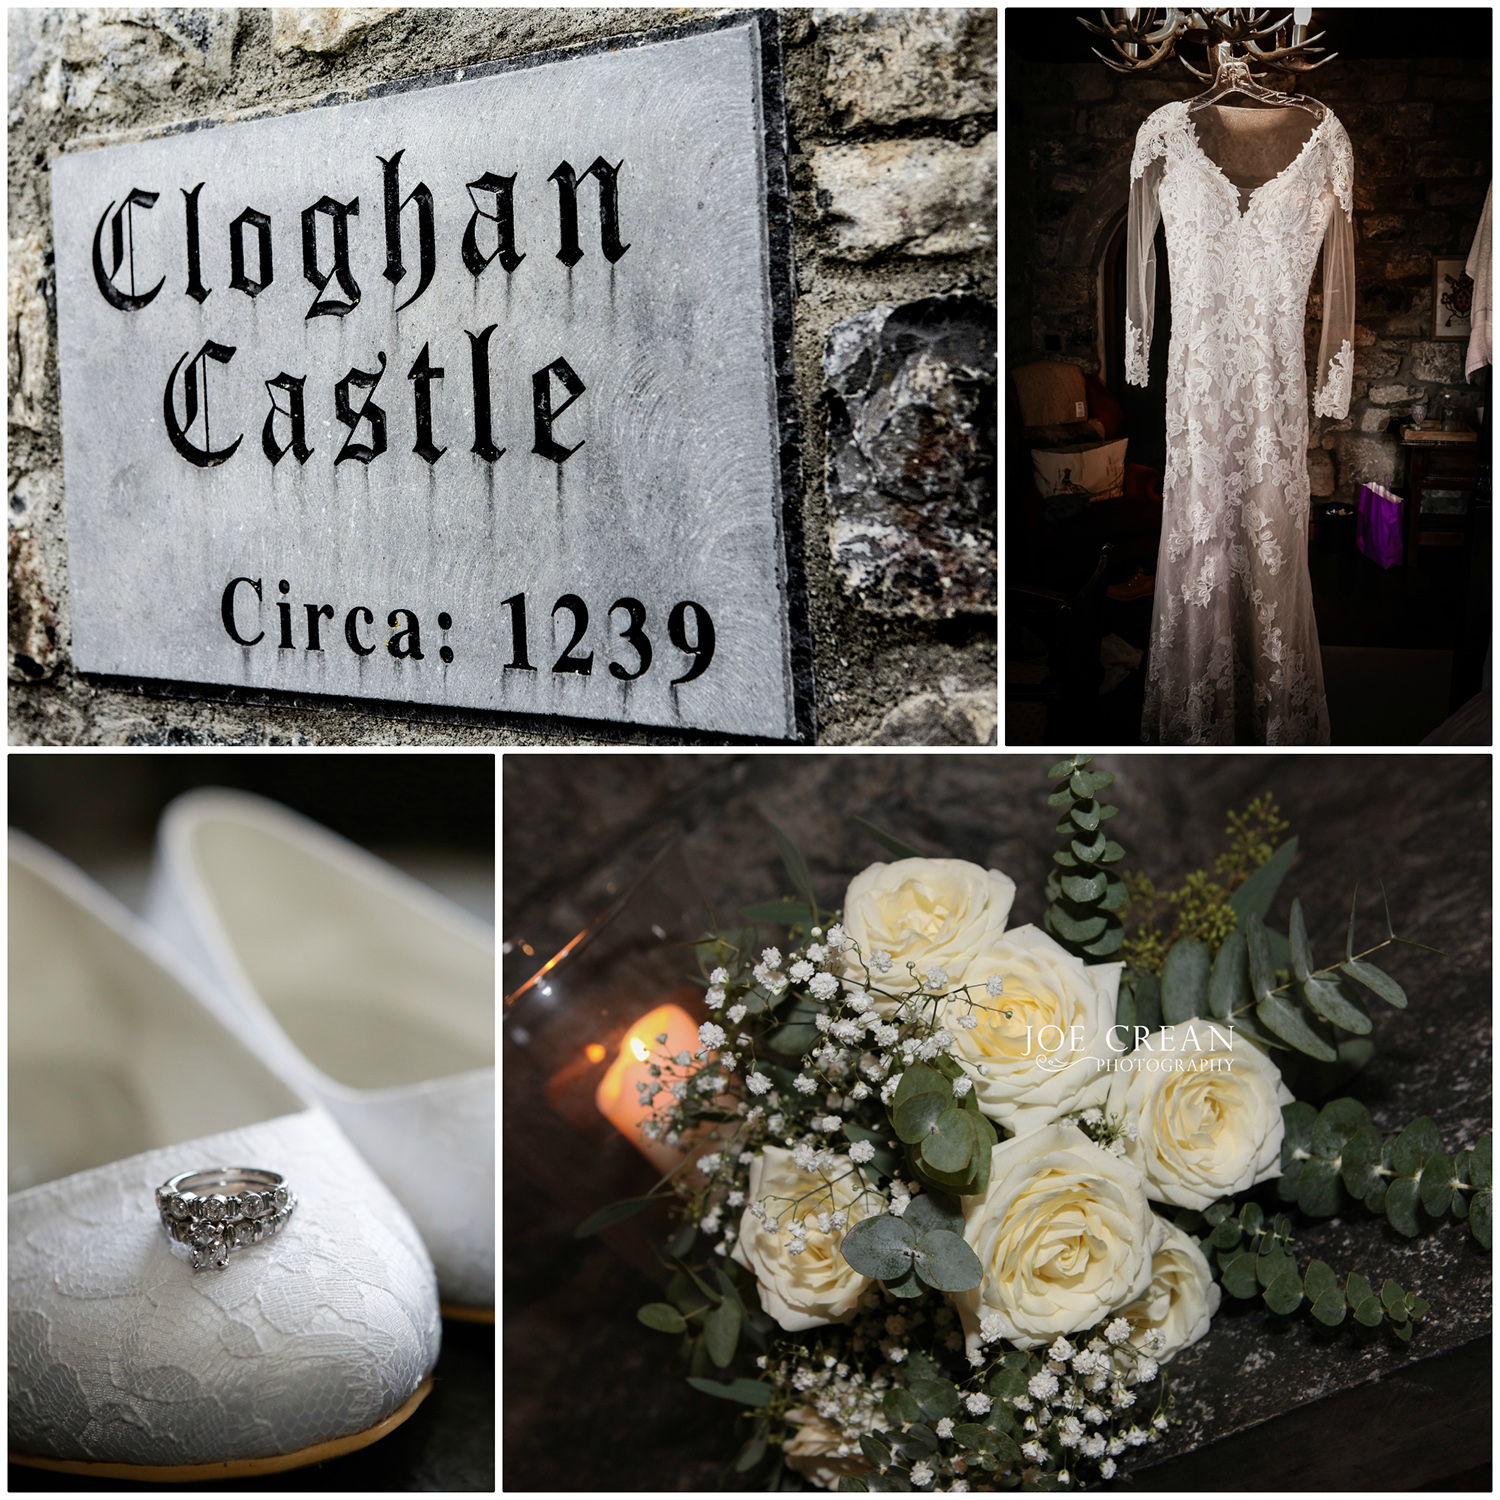 Cloghan Castle wedding